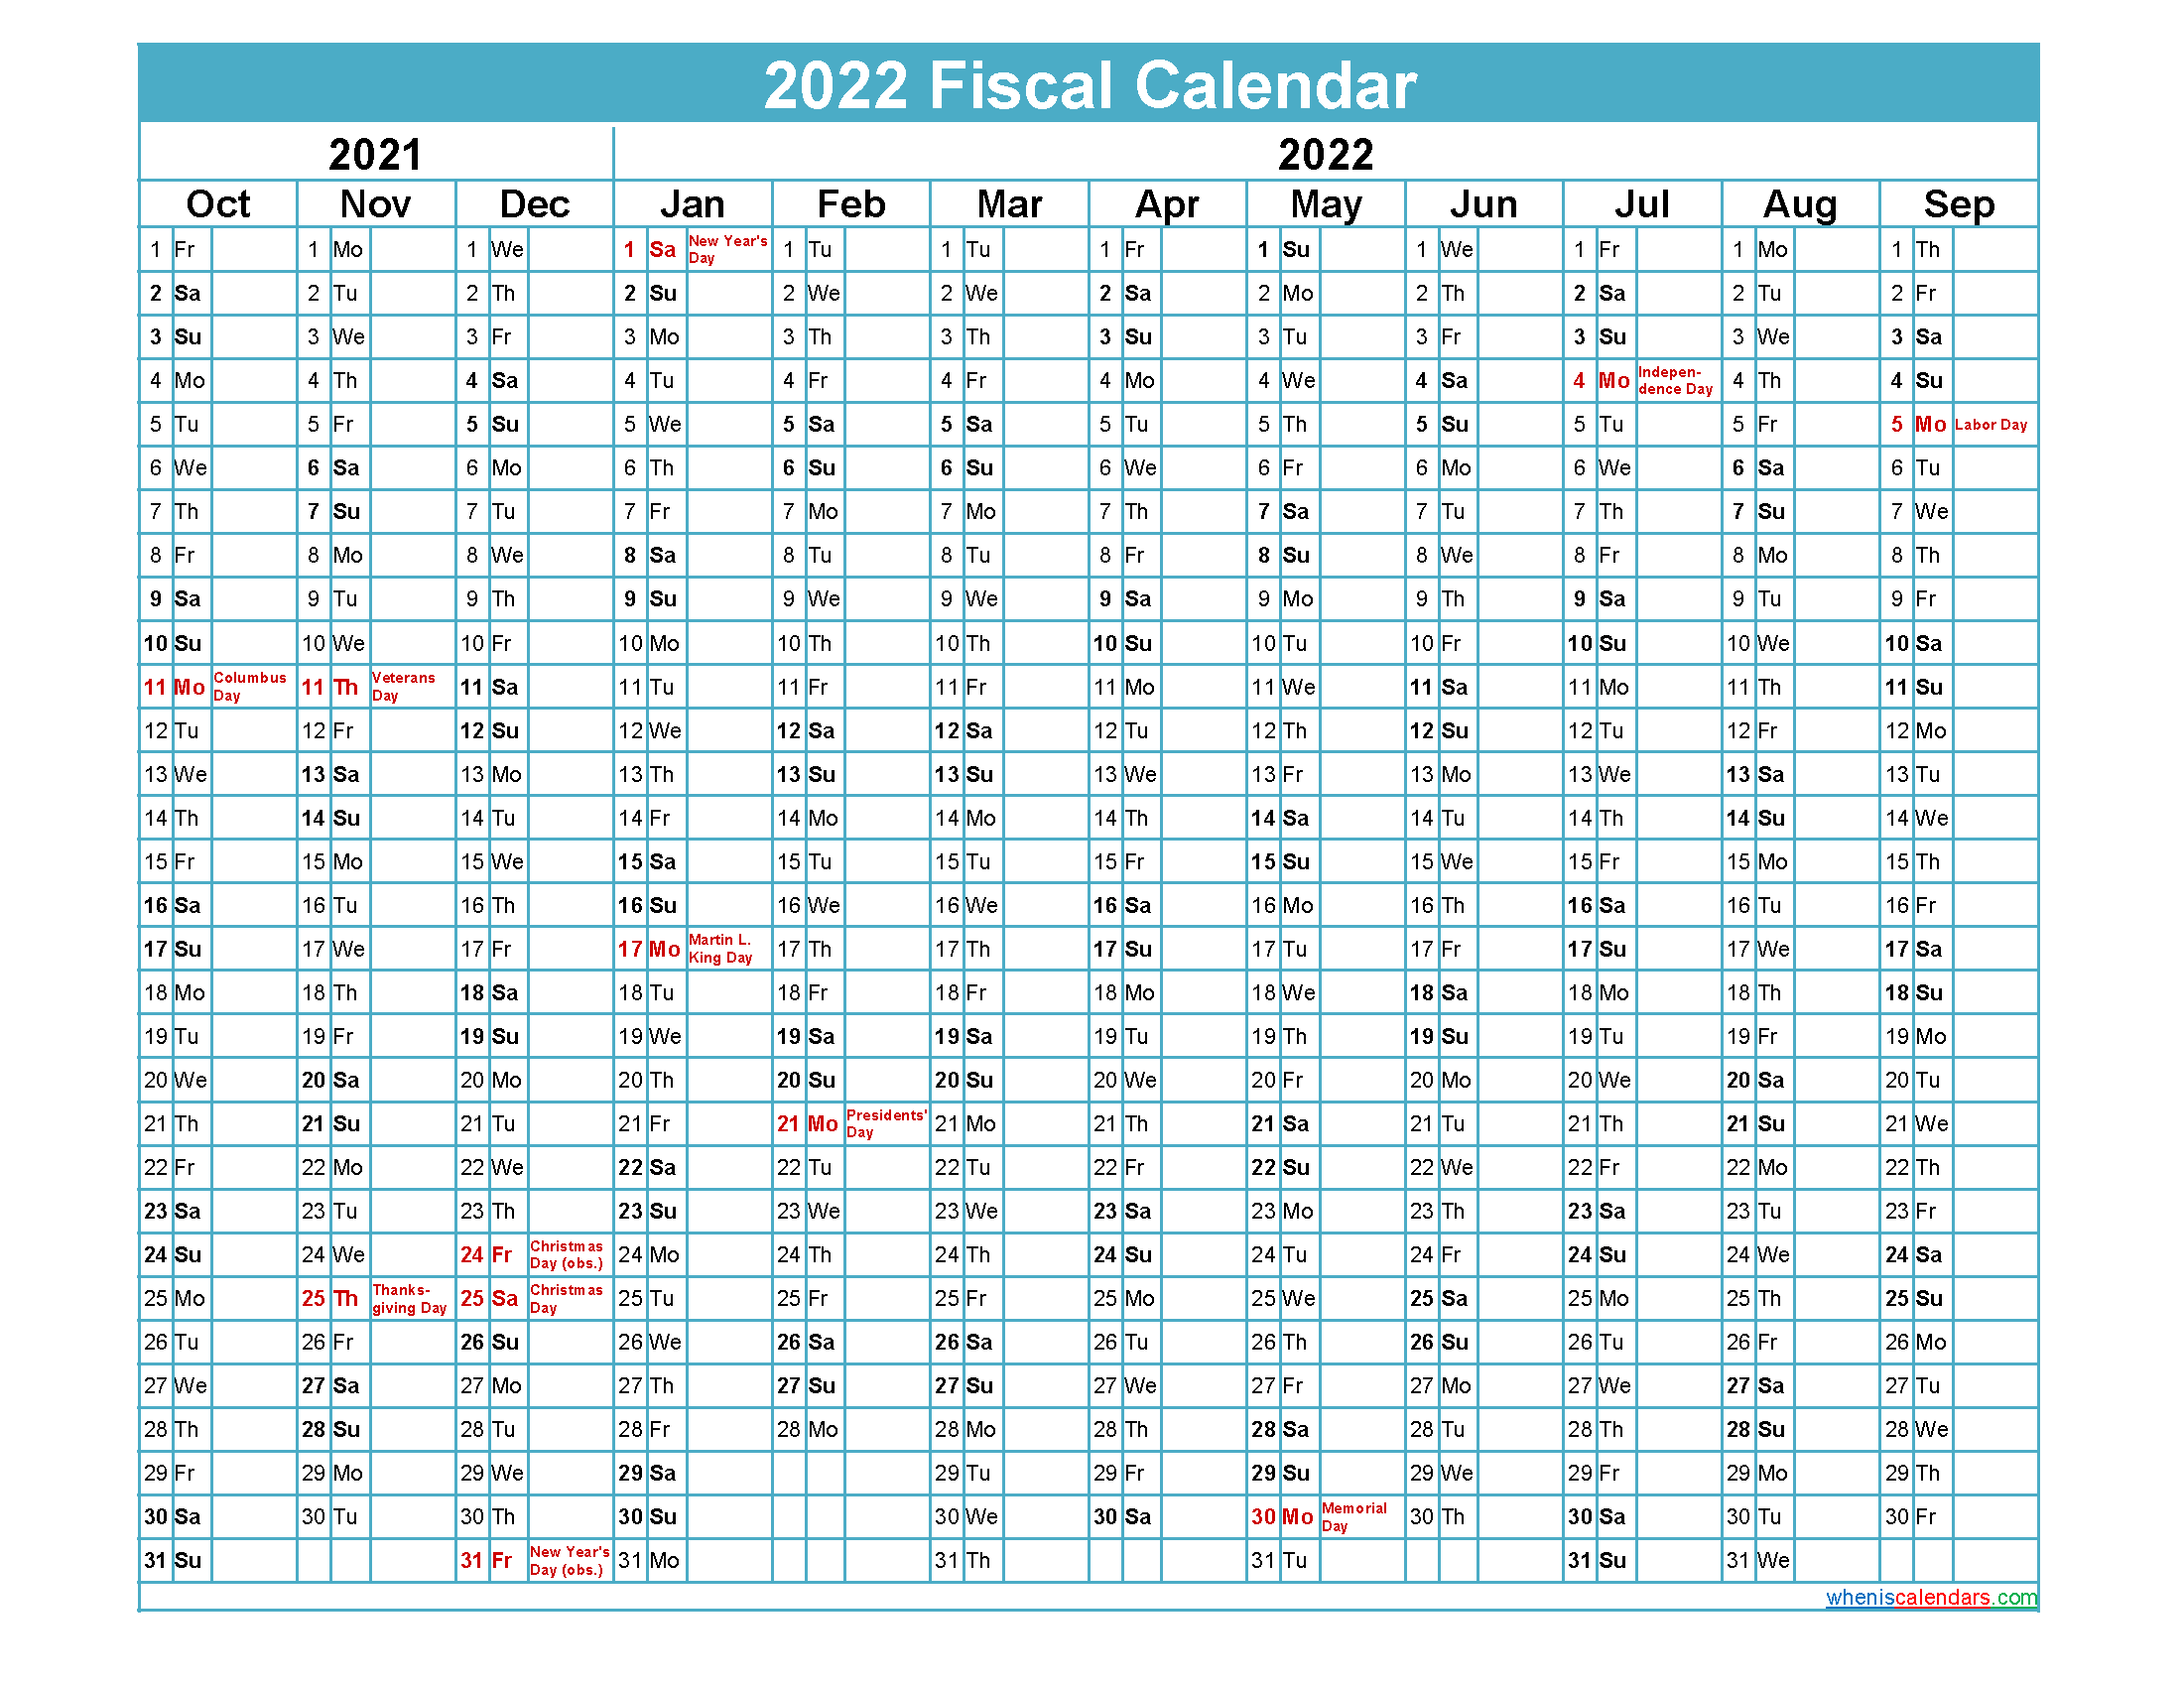 2022 Fiscal Calendar.Fiscal Calendar 2022 Federal Fiscal Year Template No Fiscal22y43 Free Printable 2021 Monthly Calendar With Holidays